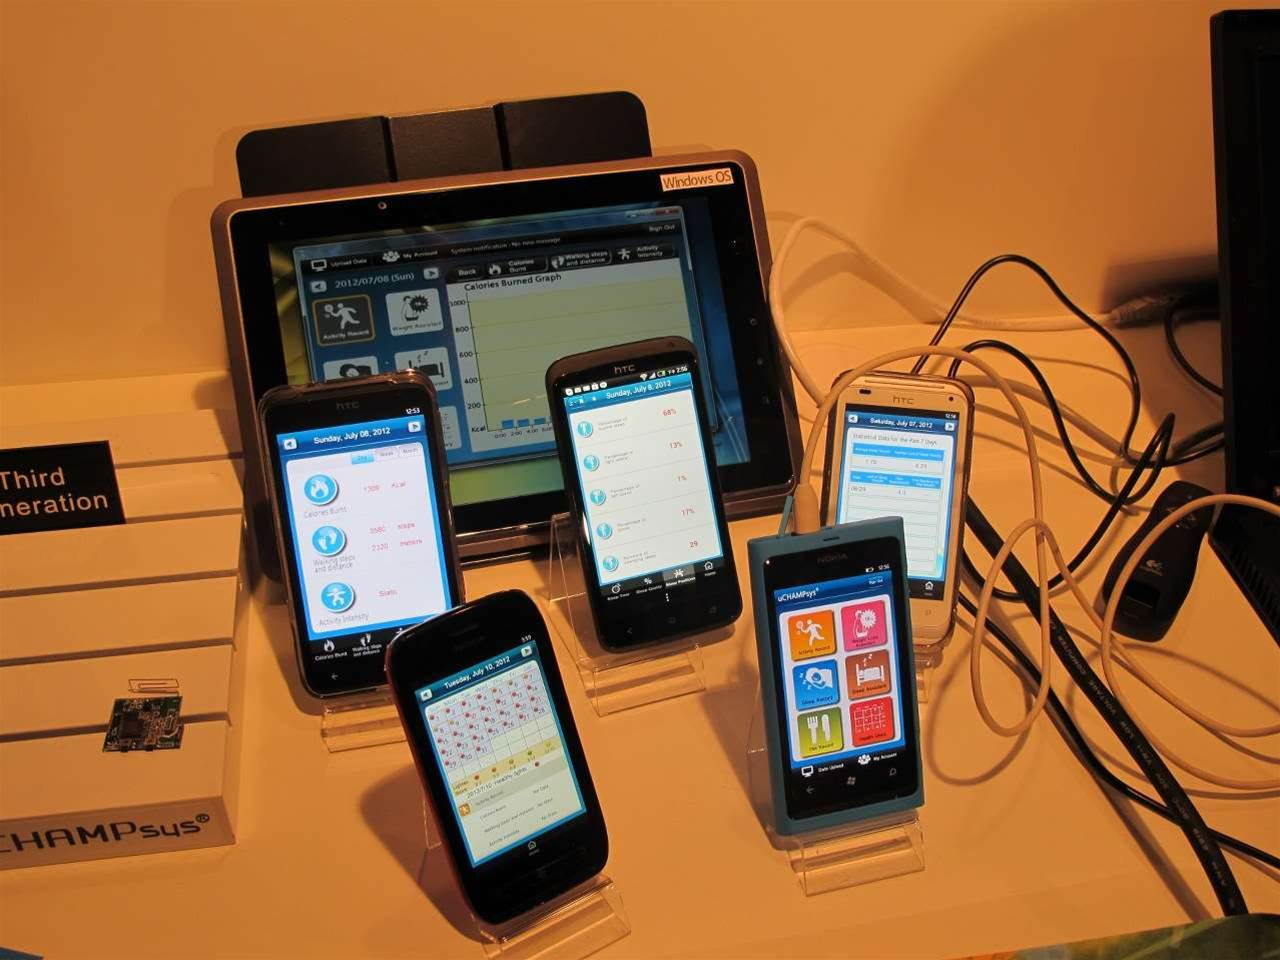 <h2>Team uCHAMPsys</h2>A variety of smartphone handsets showing off assorted uCHAMPsys user data.